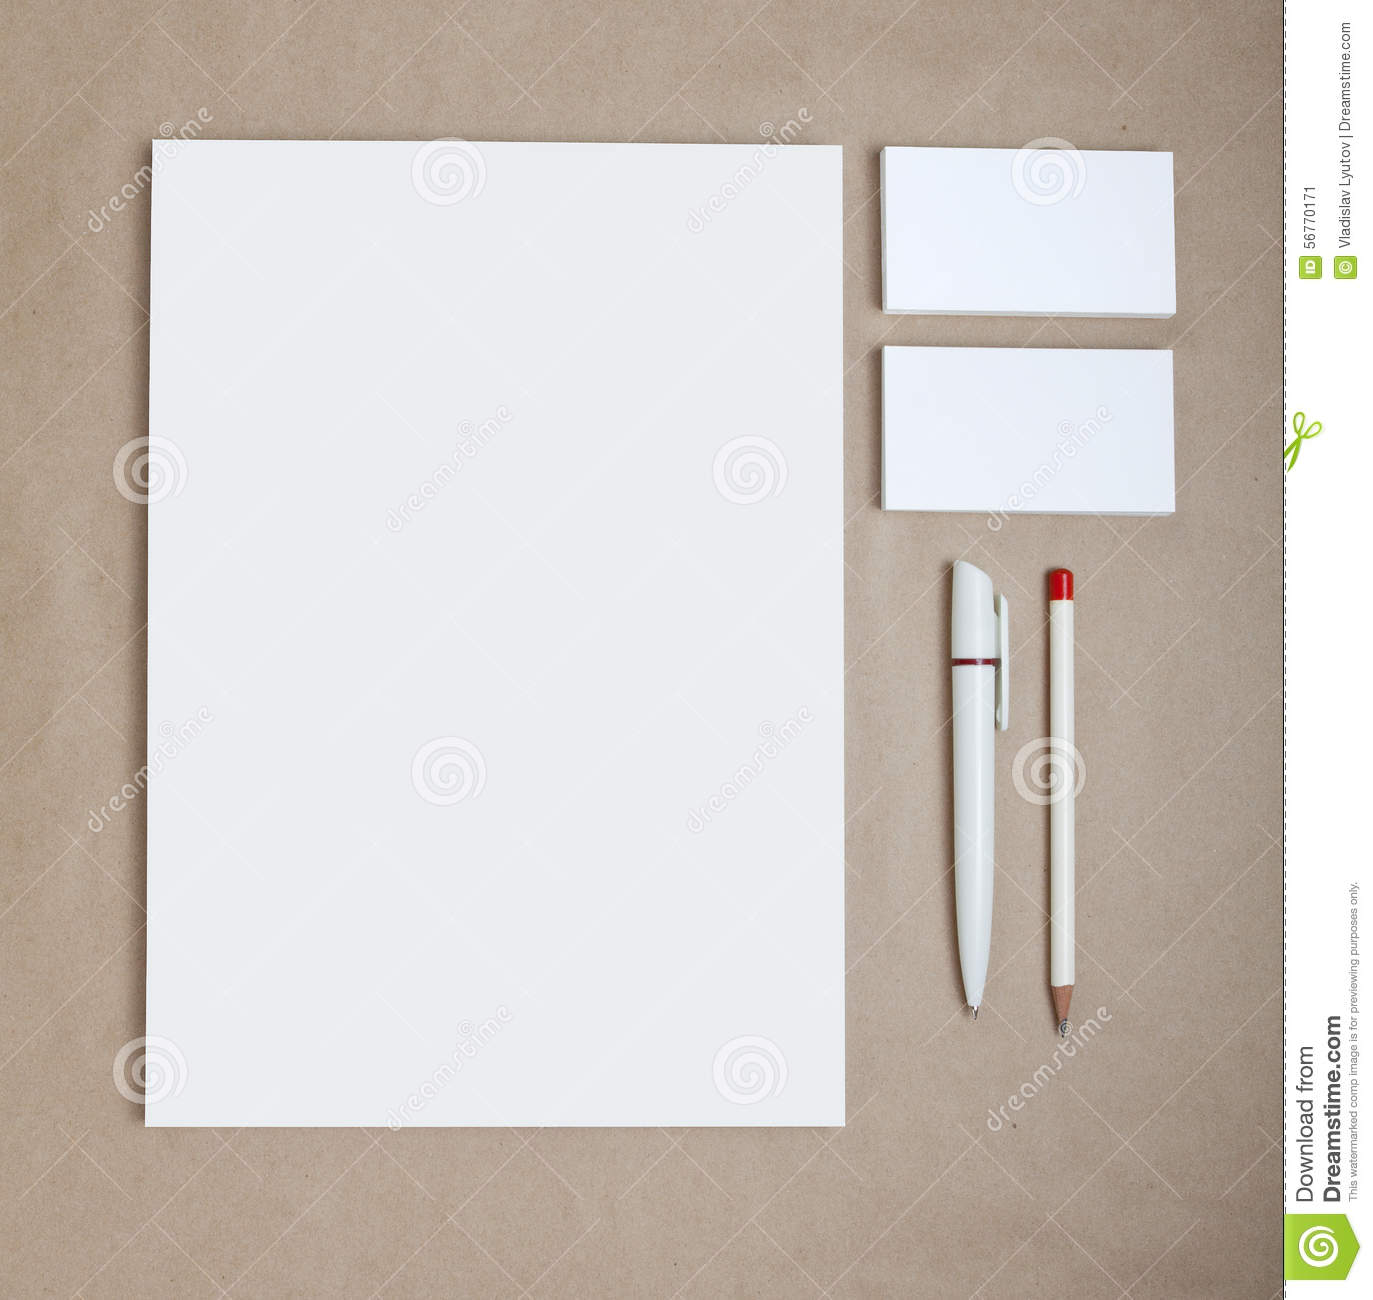 Blank stationery on craft paper consist of business cards for Craft paper card stock